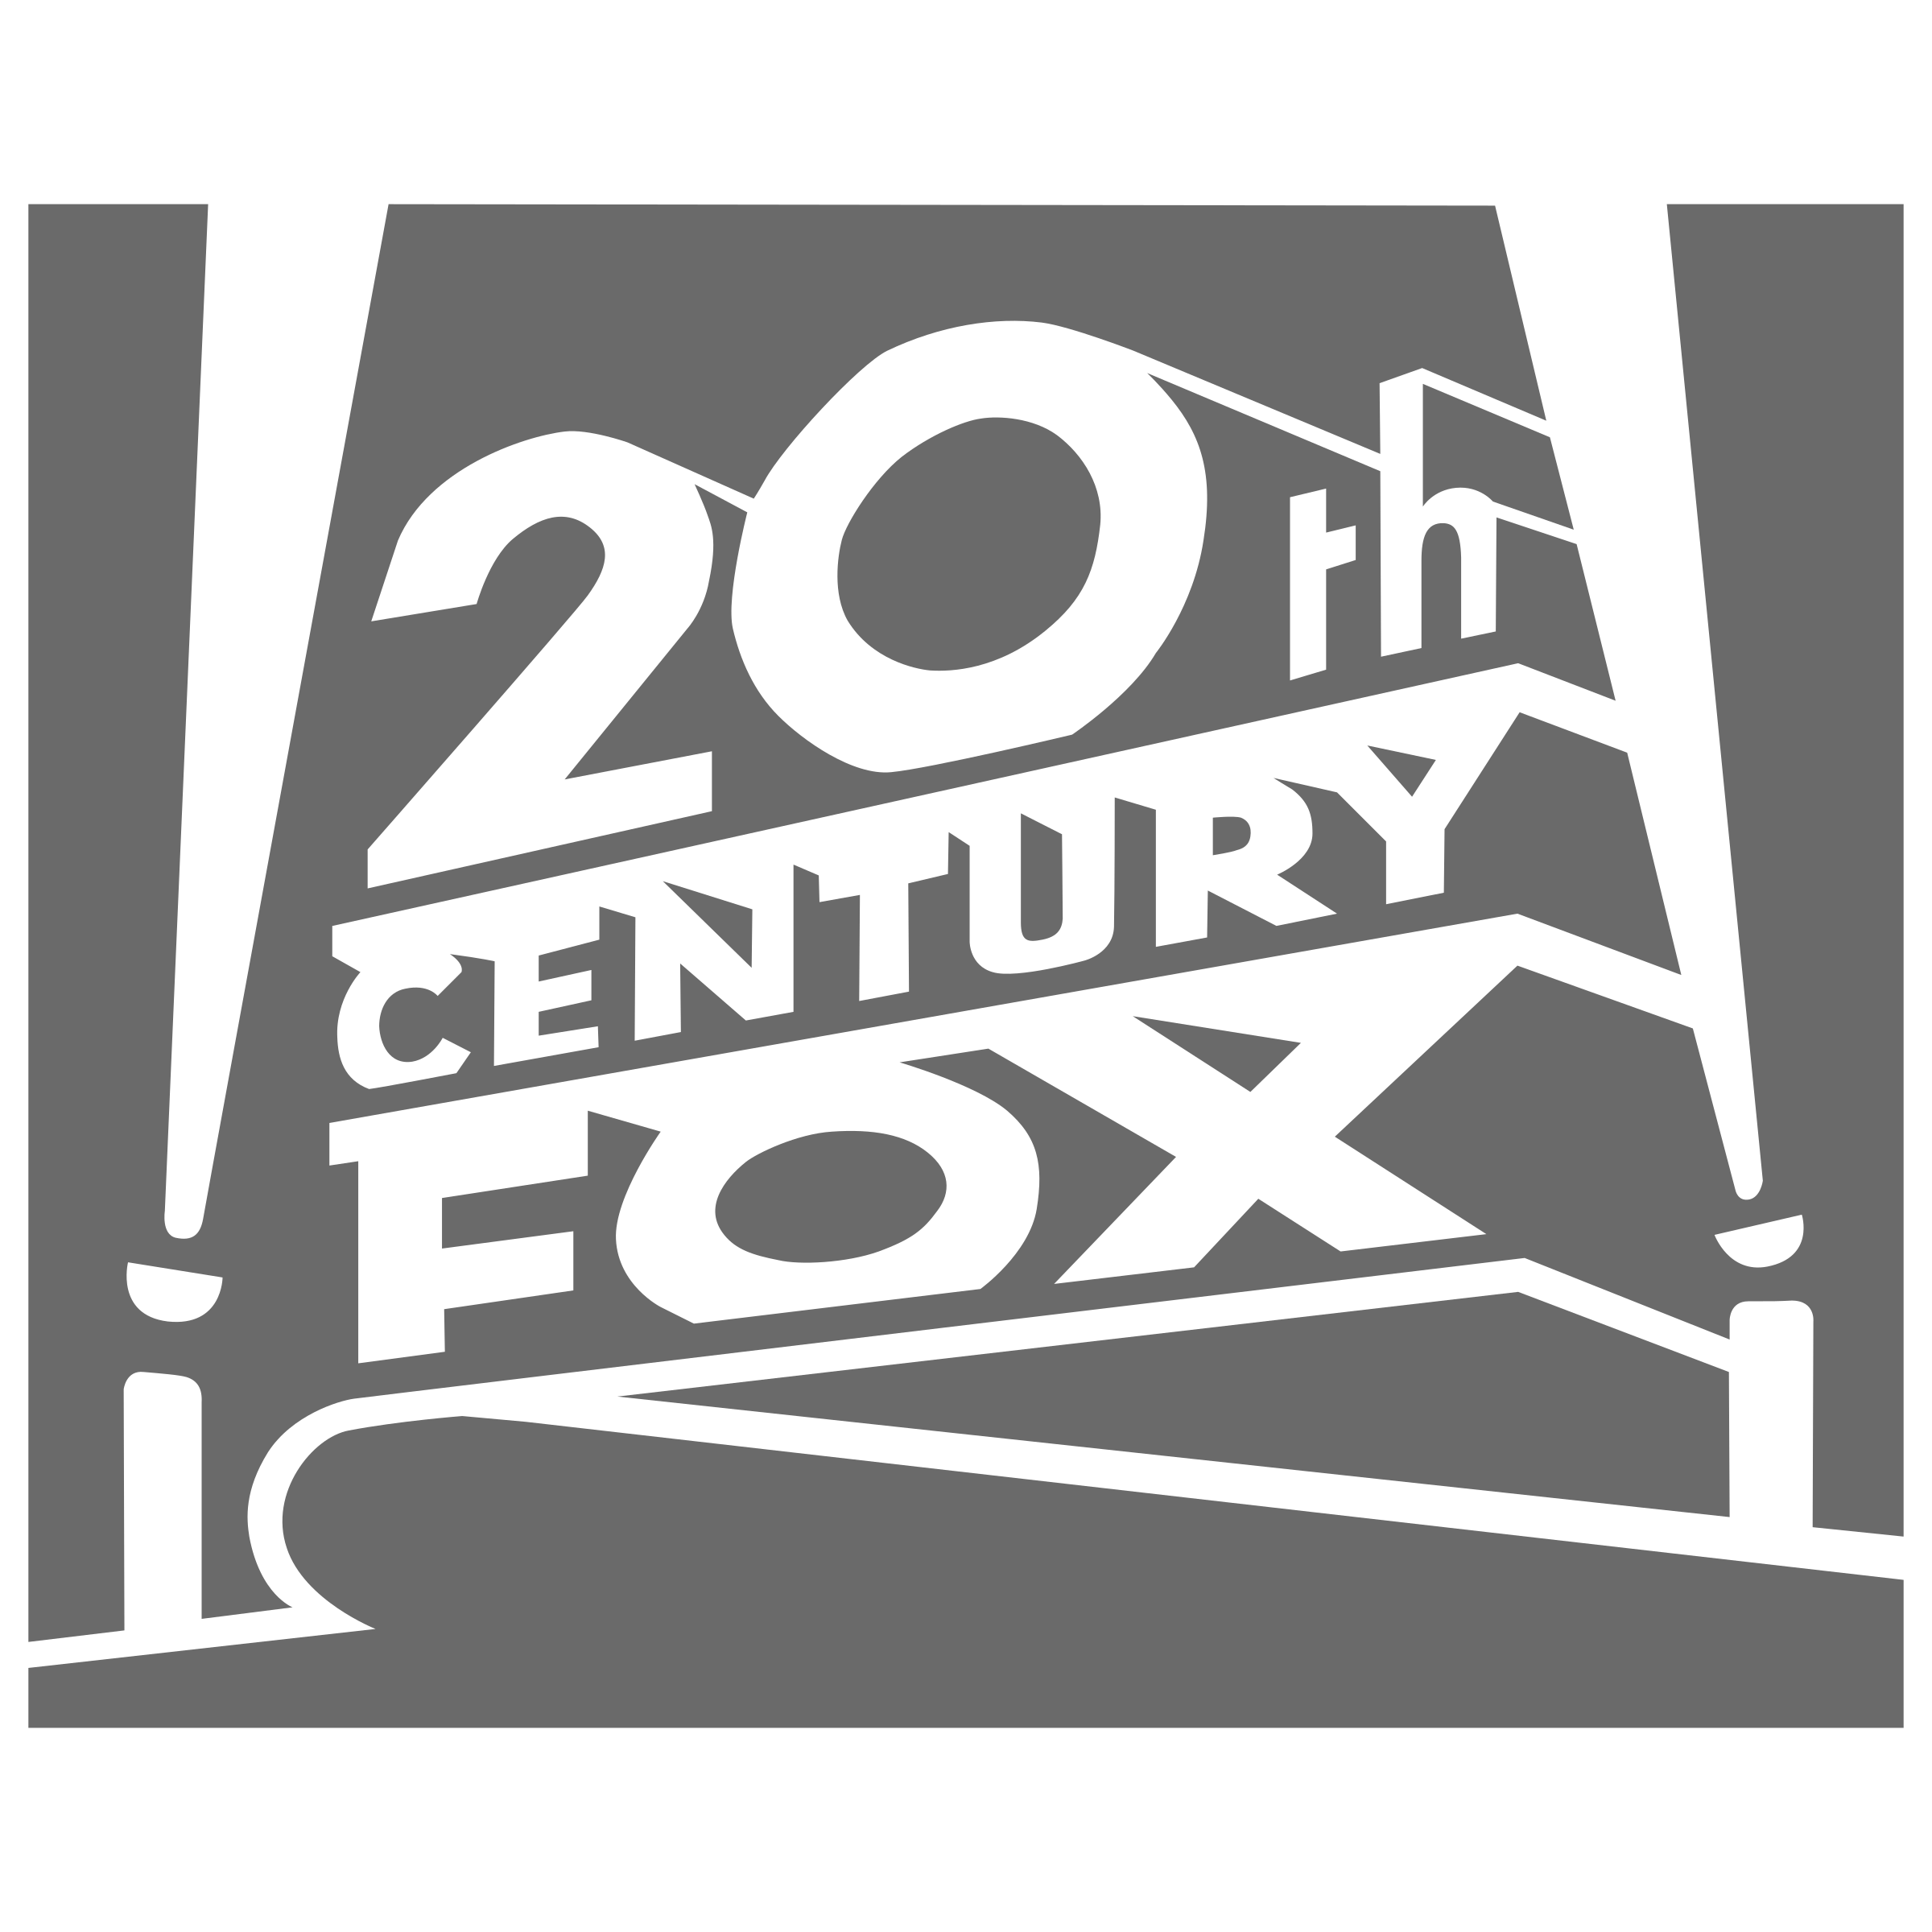 20th_cent_fox_logo.png